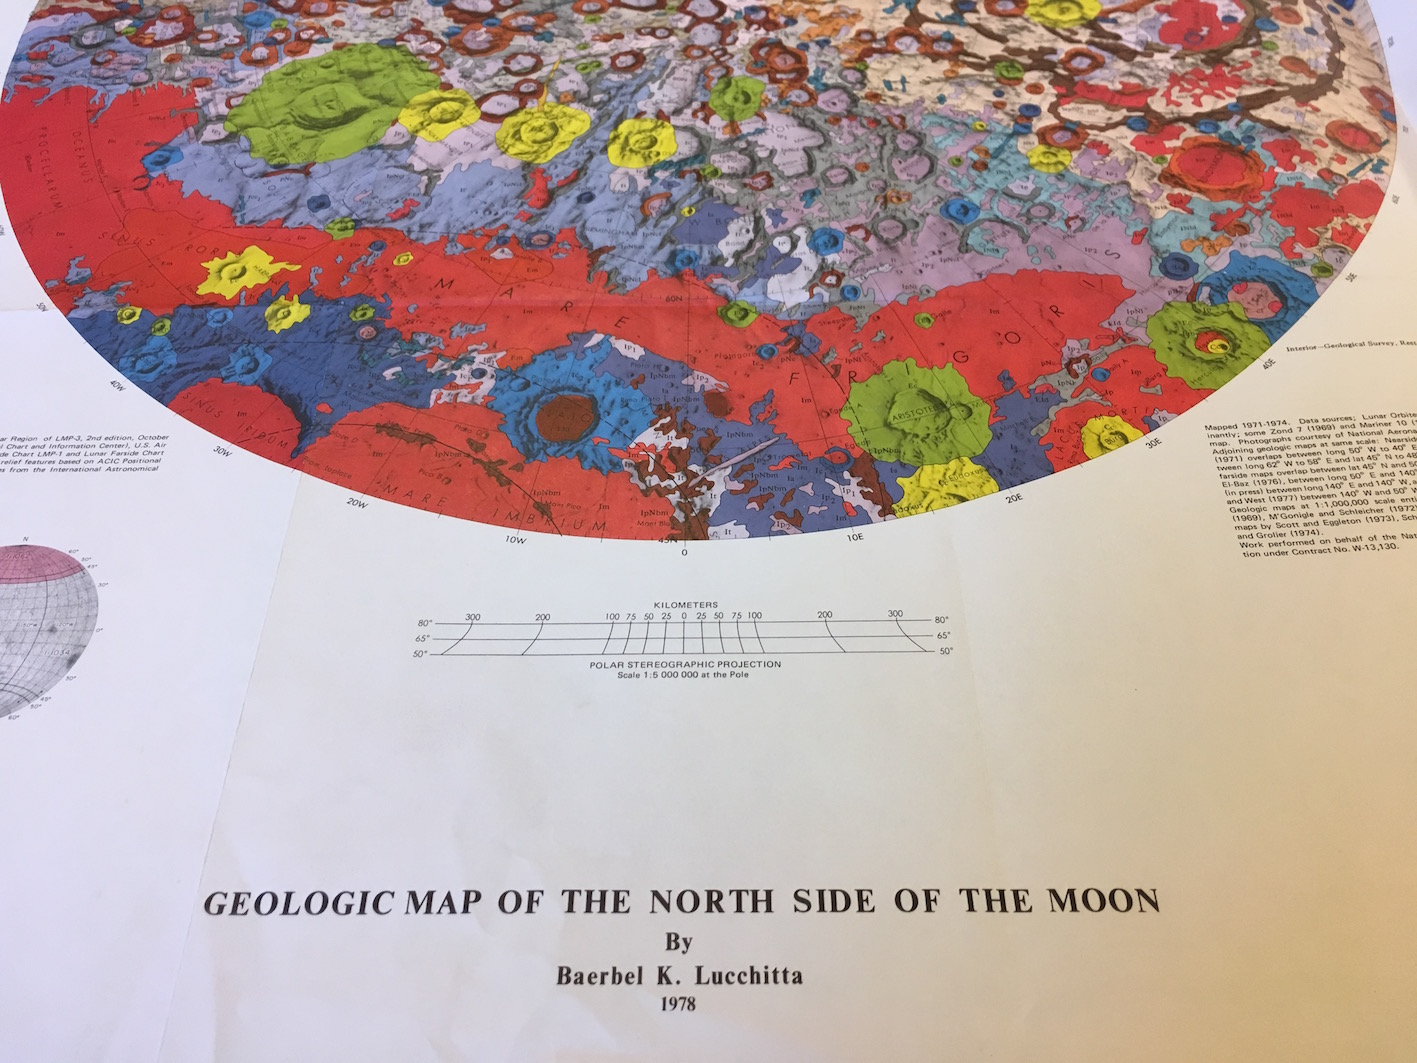 Geological map of the North side of the Moon (1978), BOD, A4 (59), detail.